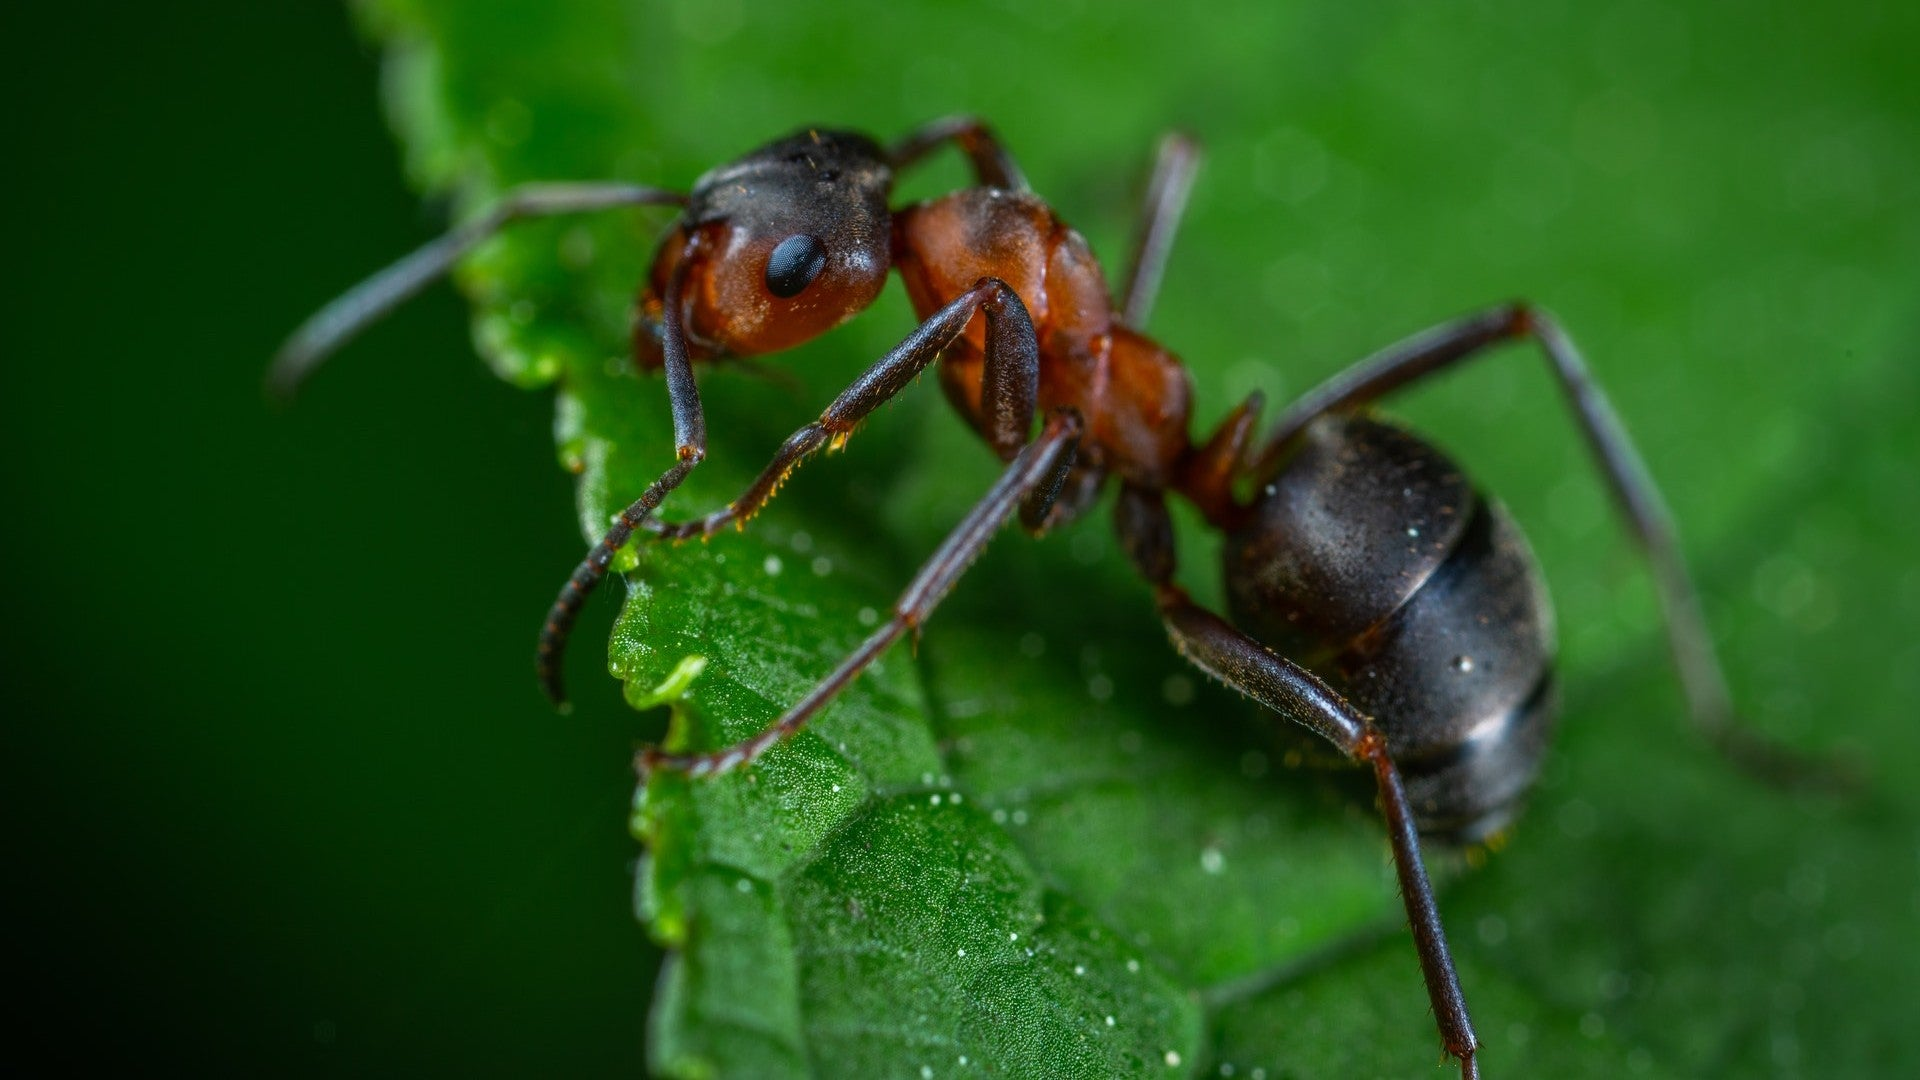 An ant on a bright green leaf.